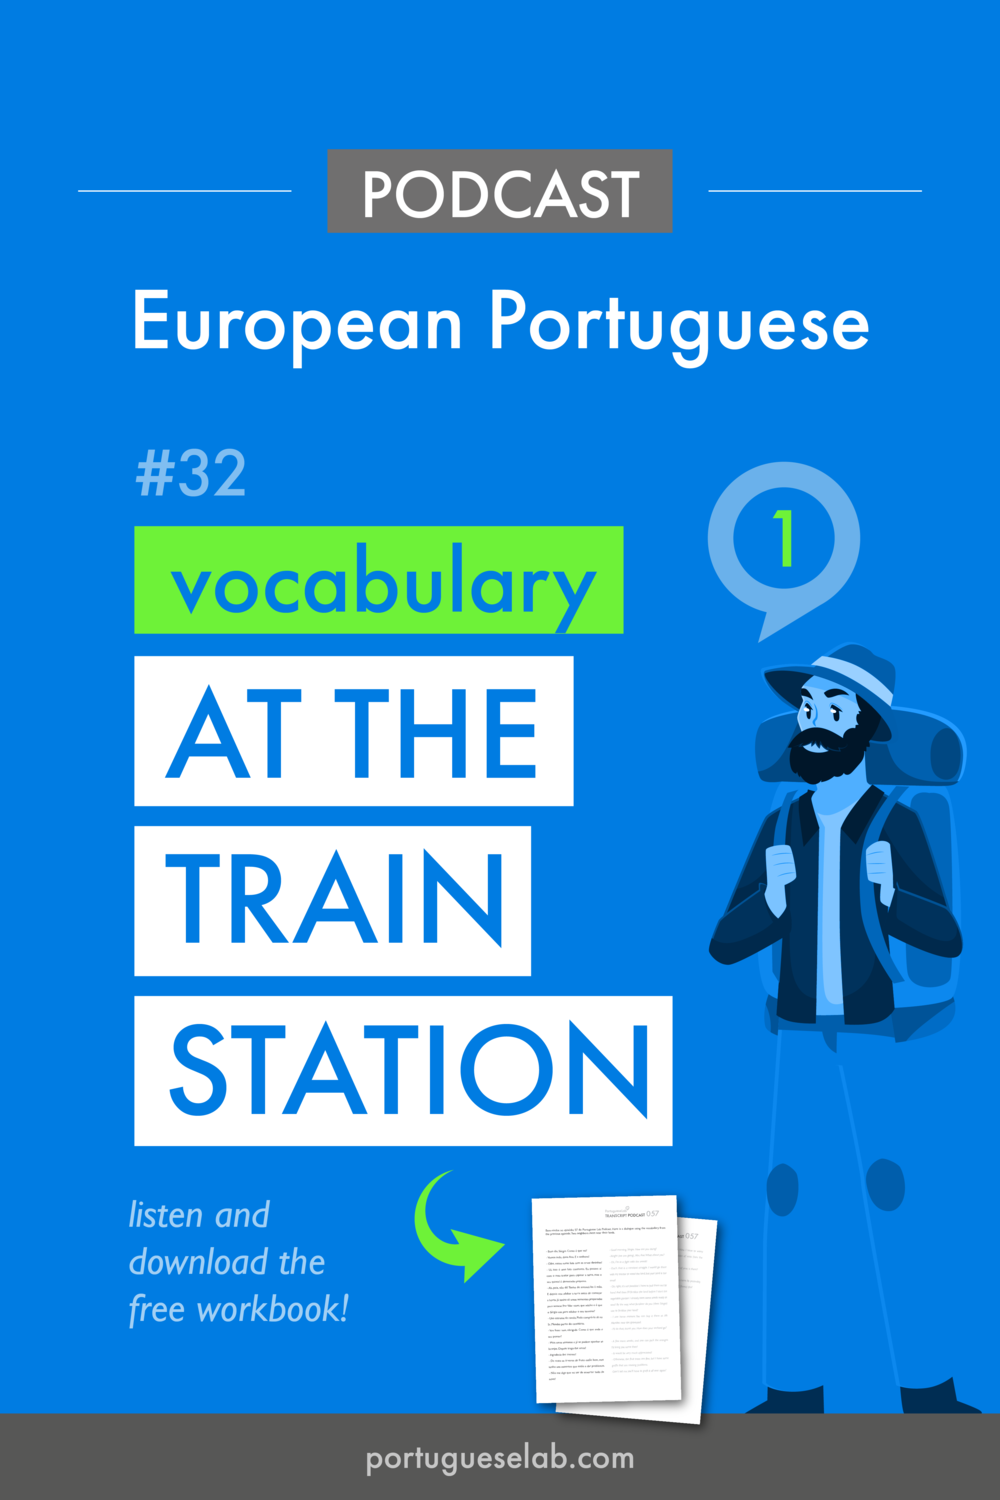 Portuguese Lab Podcast - European Portuguese - 32 - At the train station - vocabulary.png